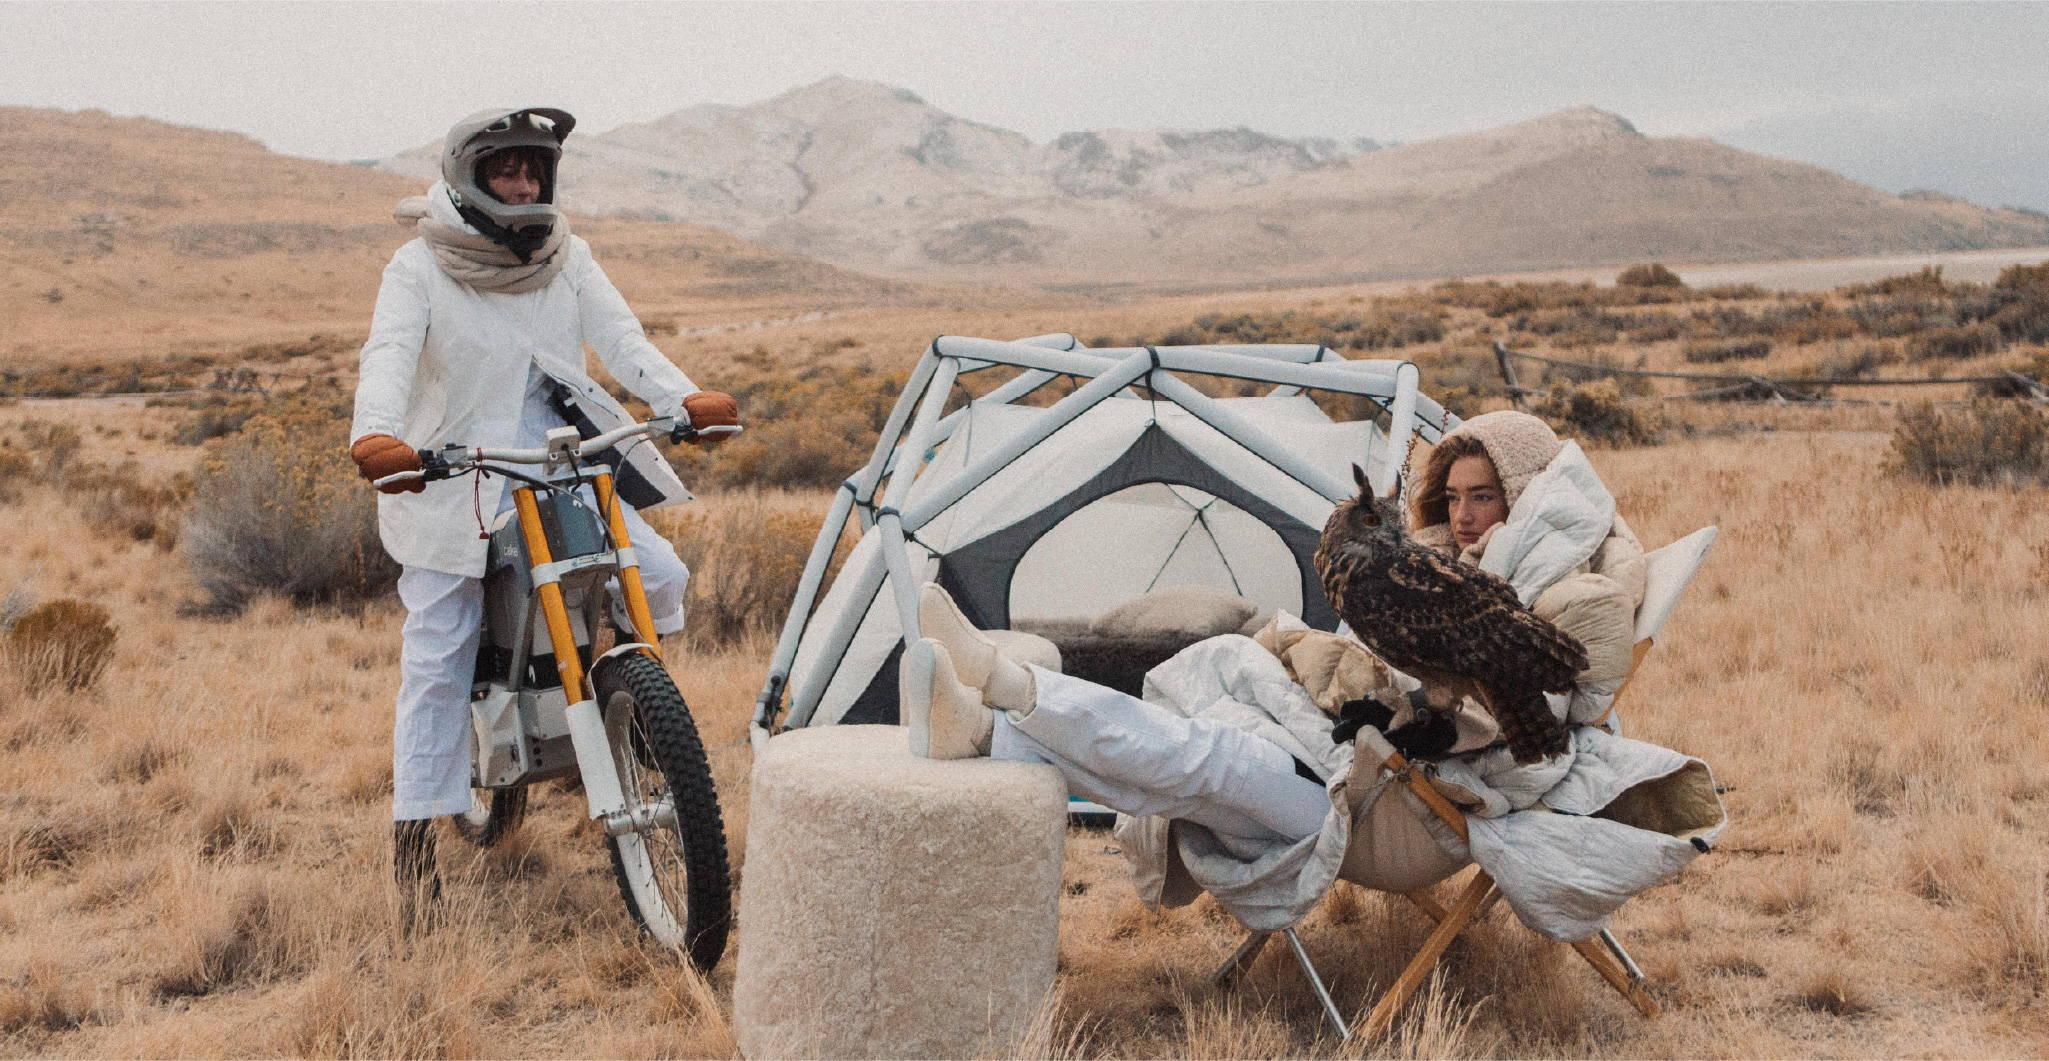 Woman on a dirt bike outside of a tent with an owl in Westerlind Rumpl blanket